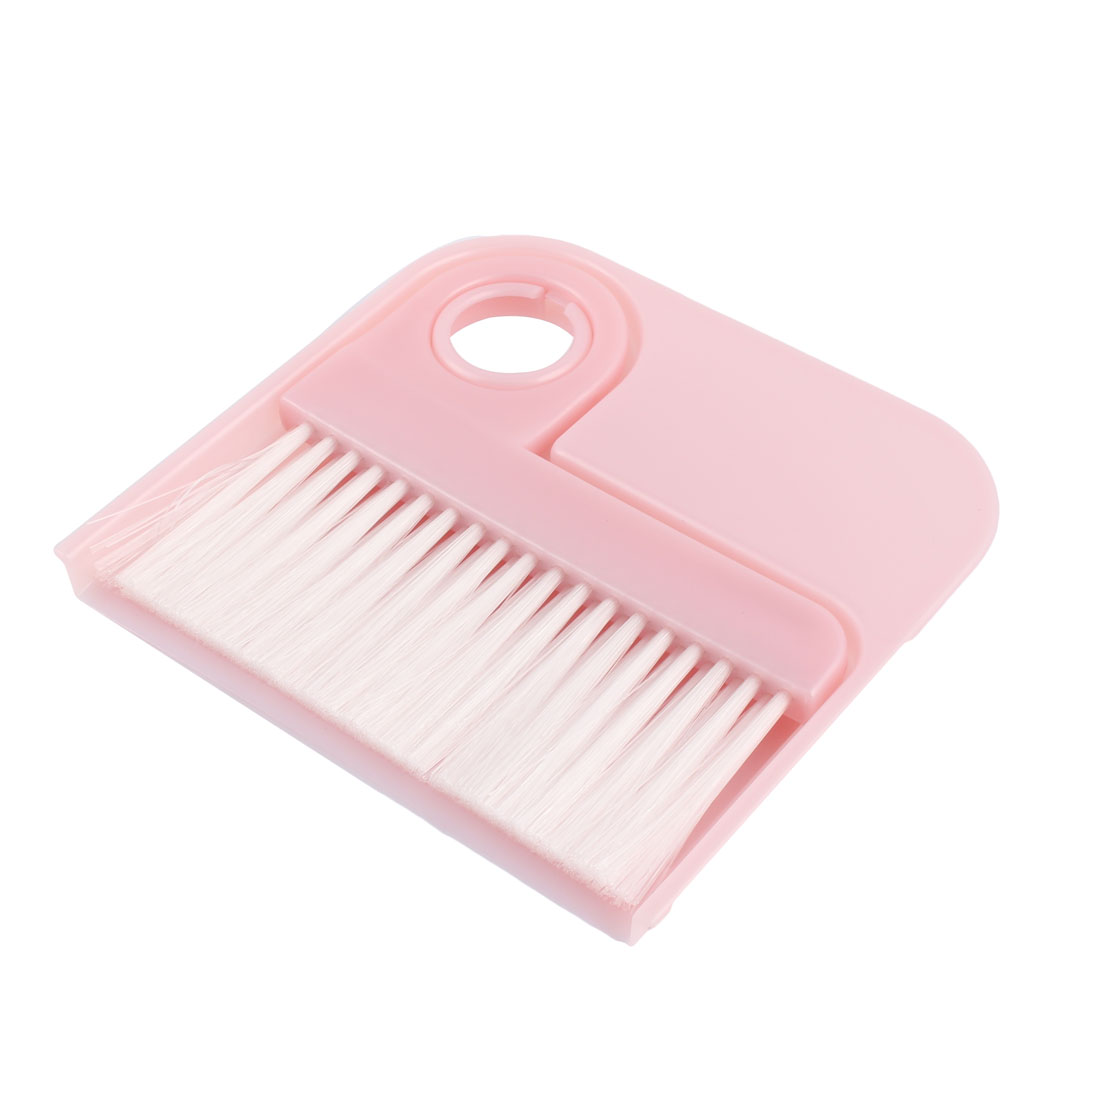 Restaurant Kitchenware Table Crumbs Mini Cleaning Broom Dustpan Set Pink